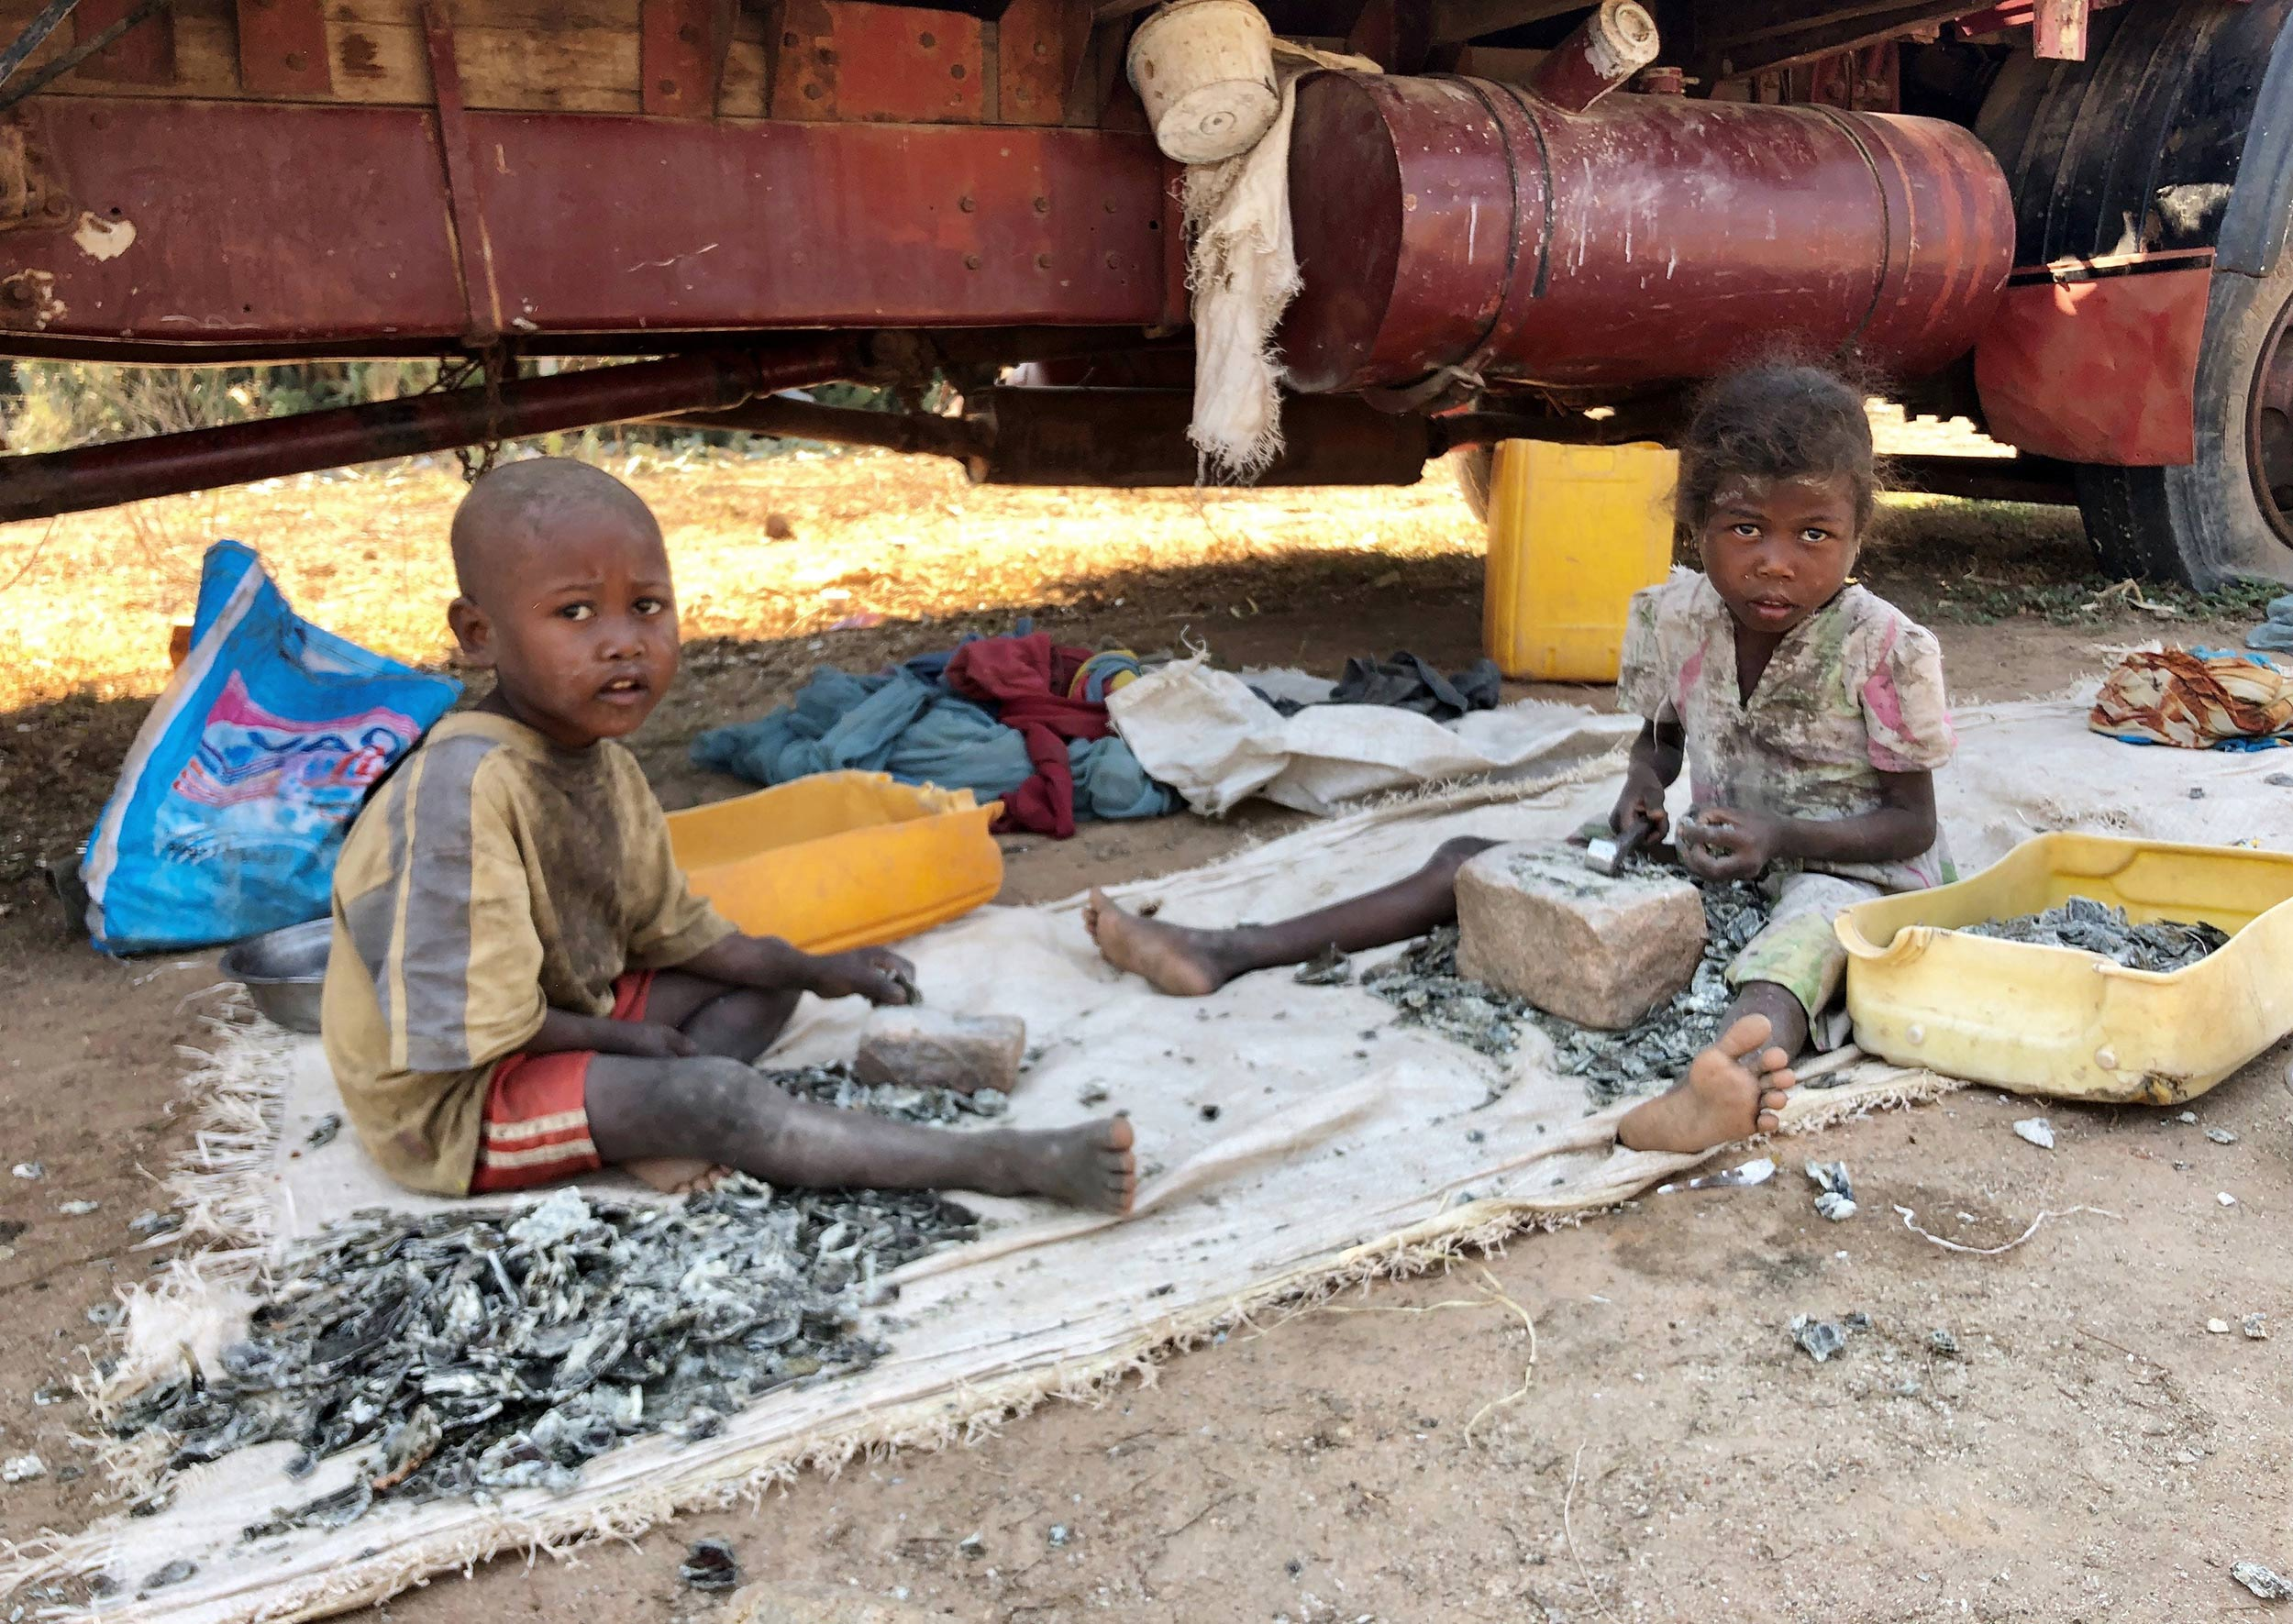 An army of children toils in African mica mines